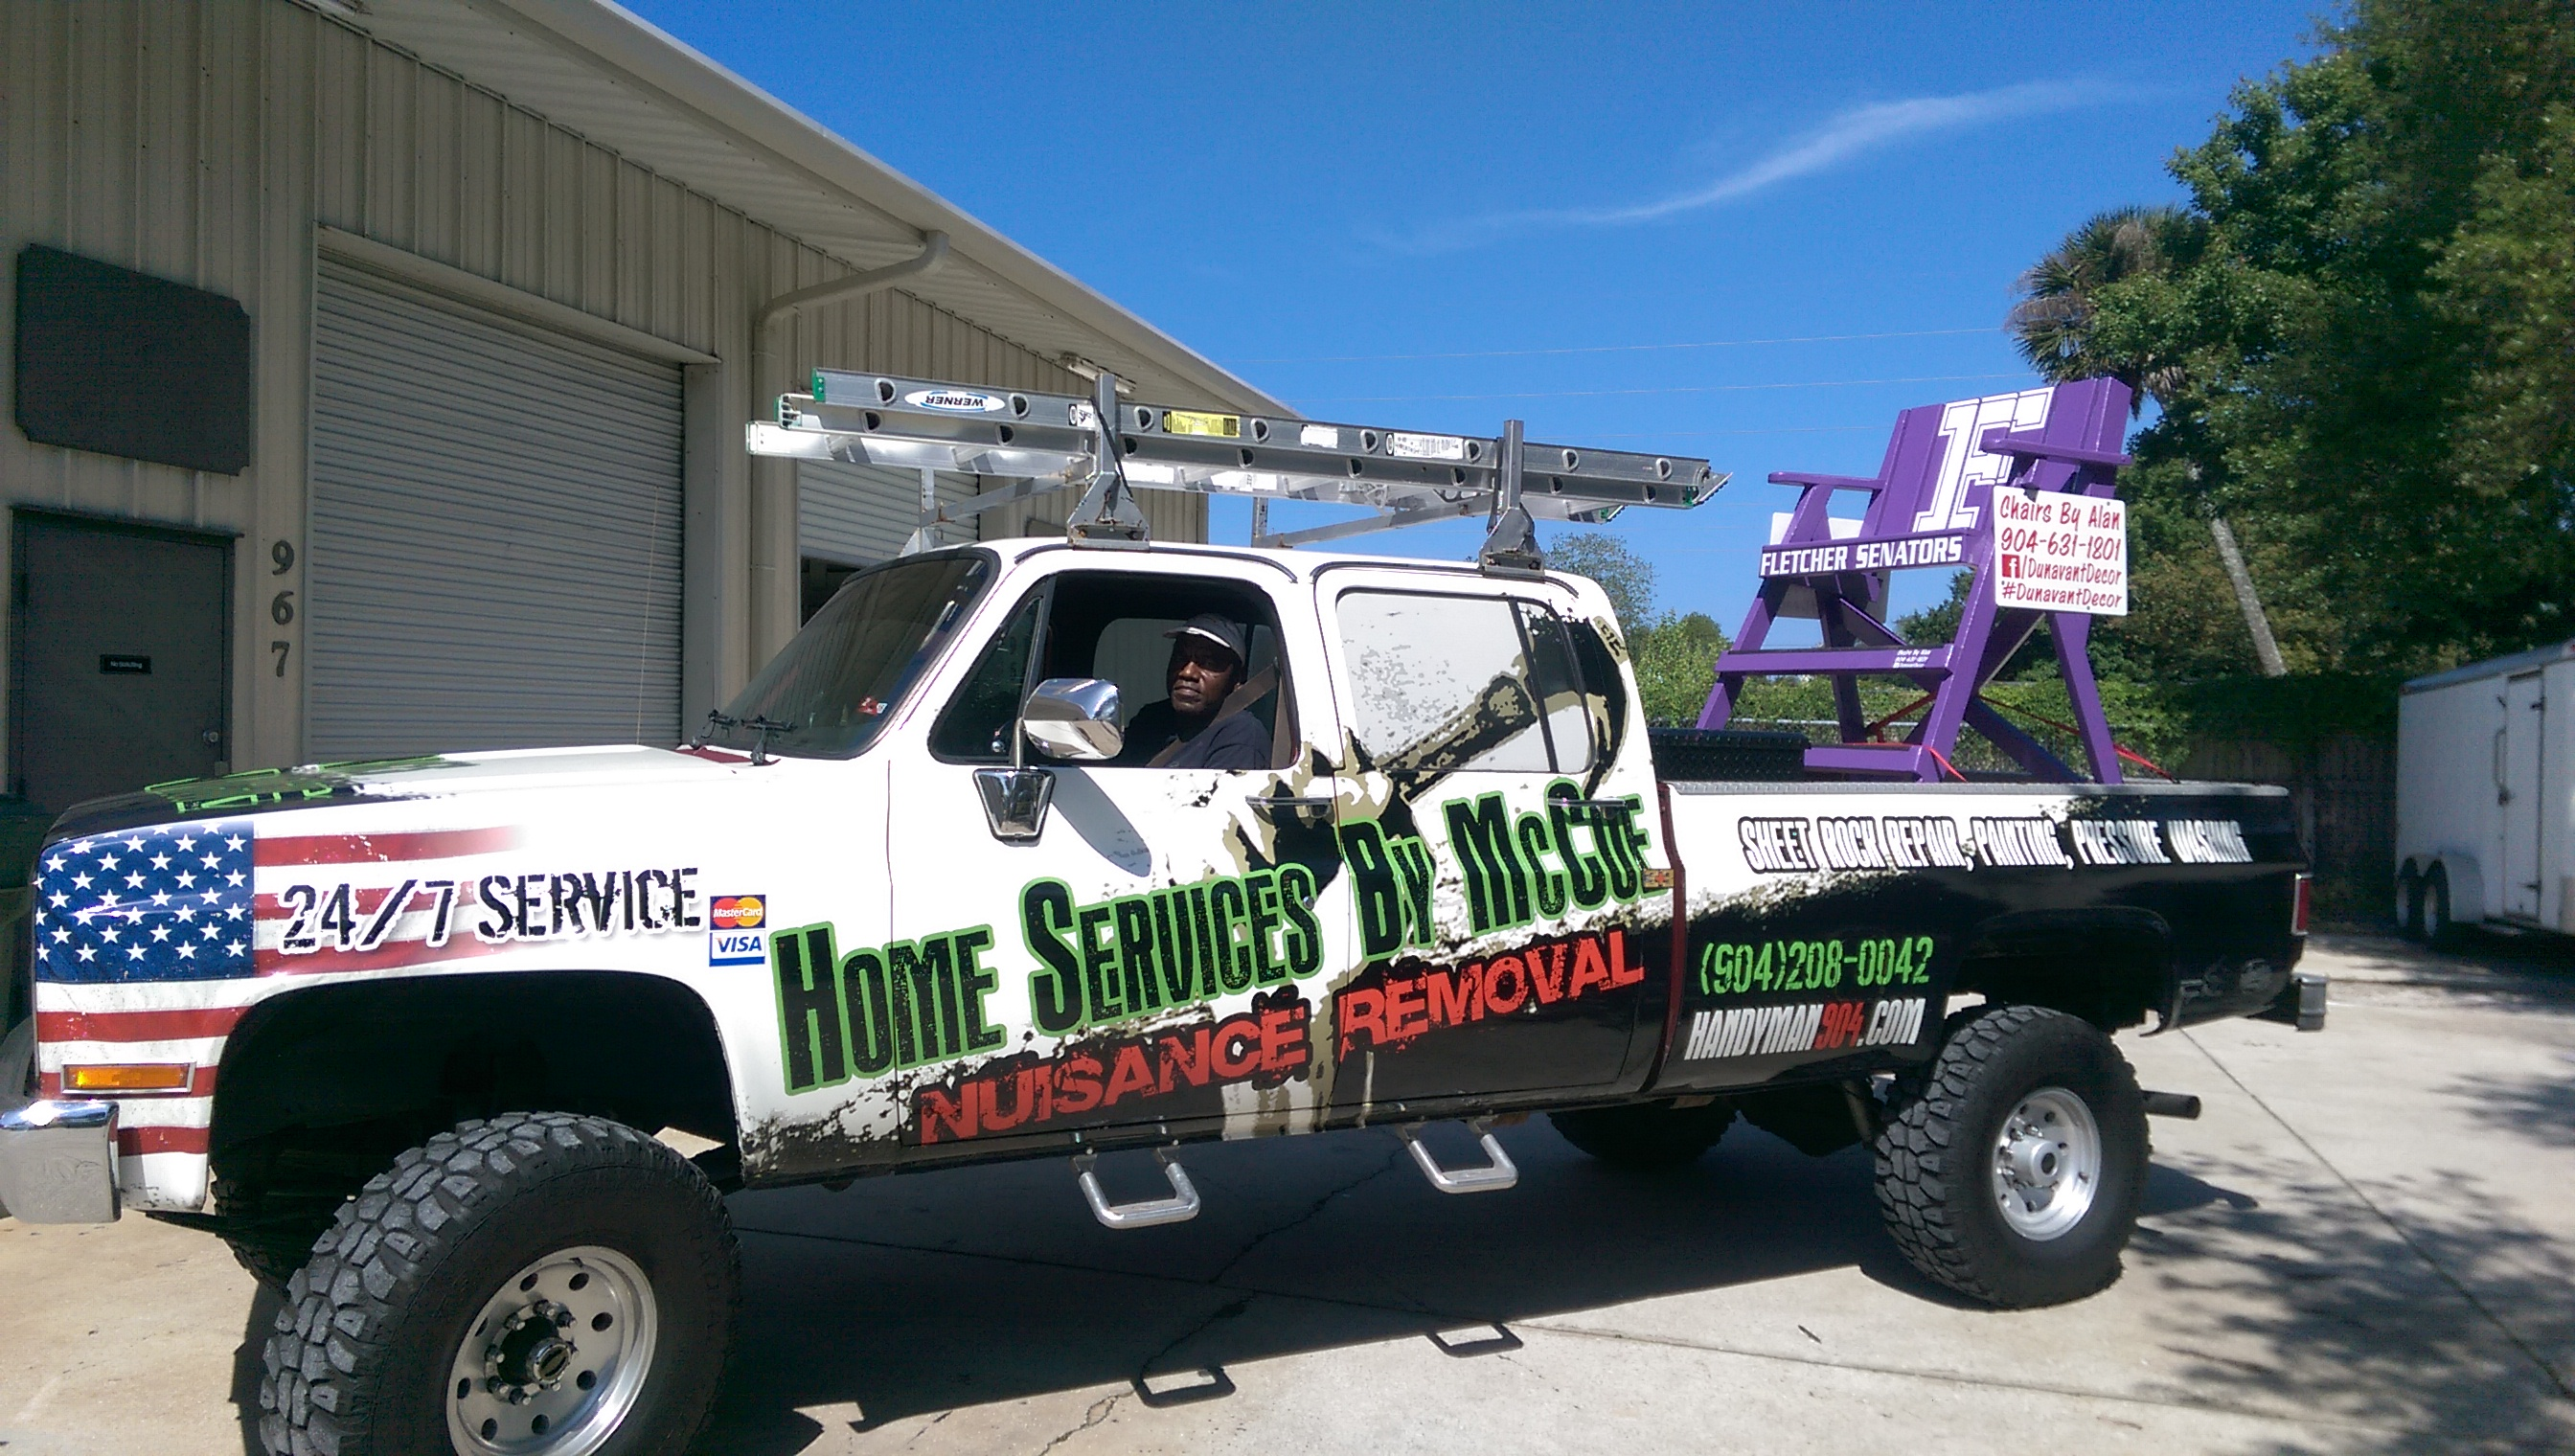 Home Services by McCue image 9